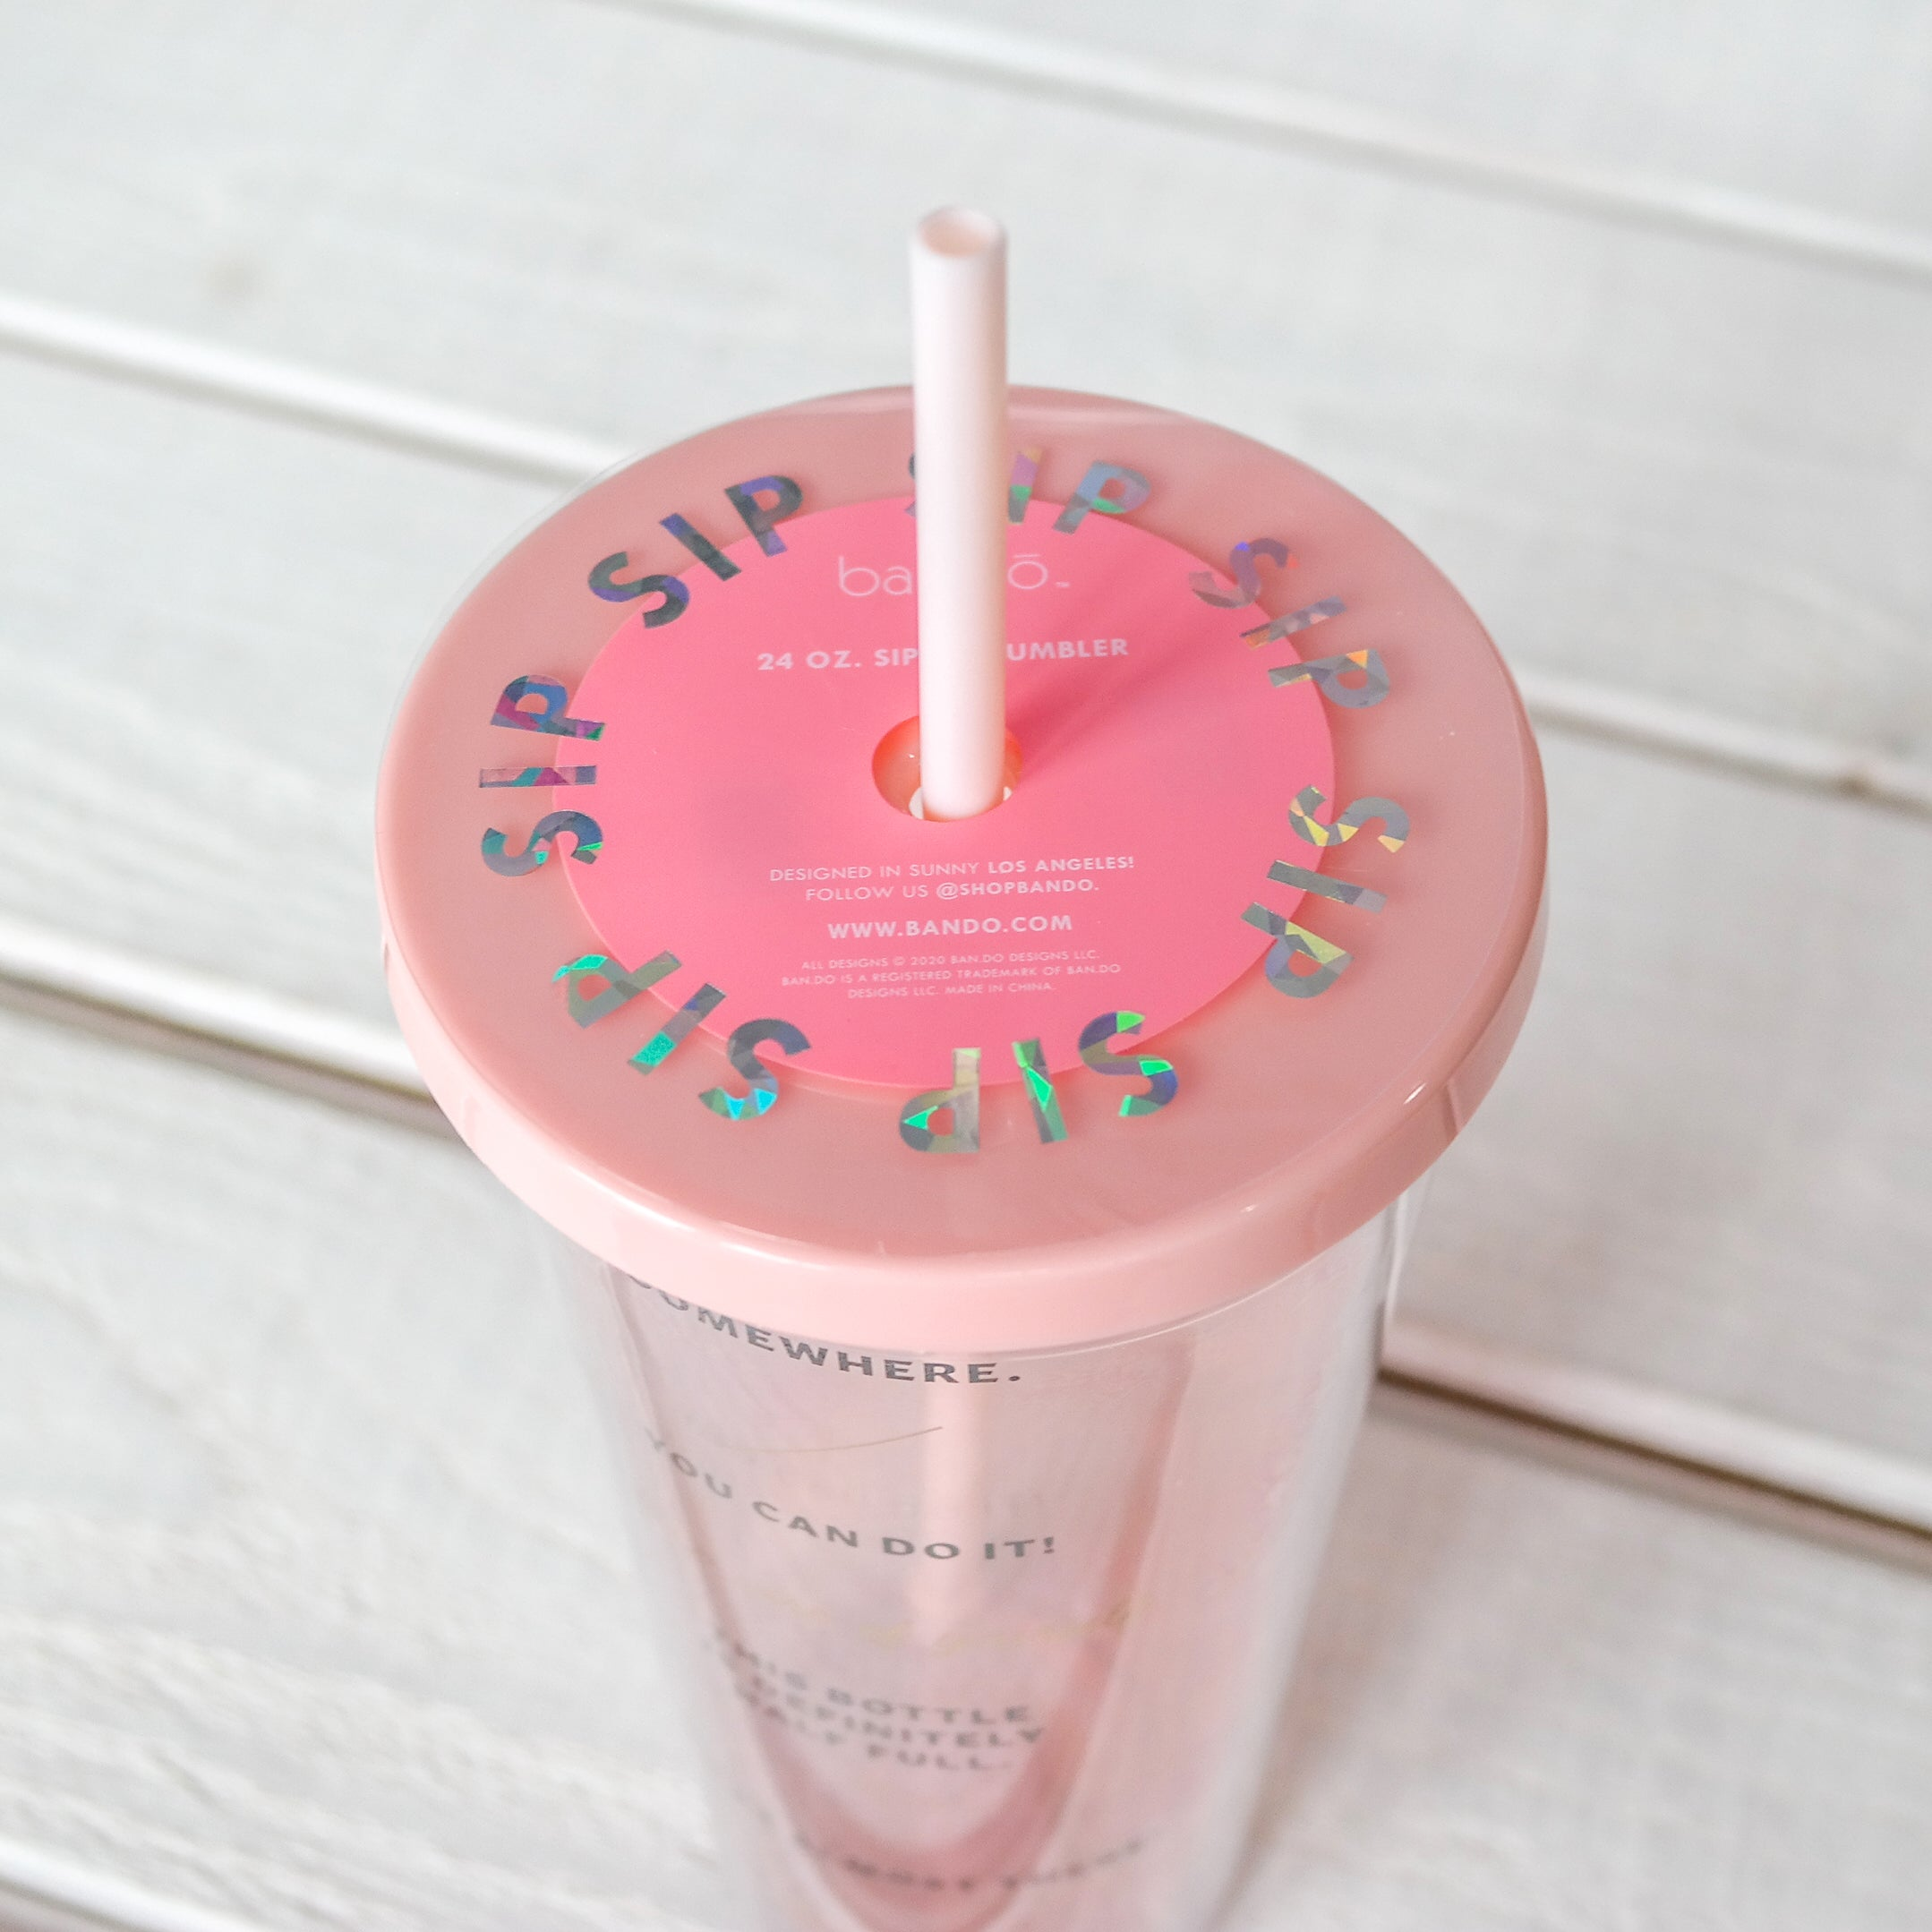 24 Oz. Sip Sip Tumbler with Straw - Drinking Enough Water?